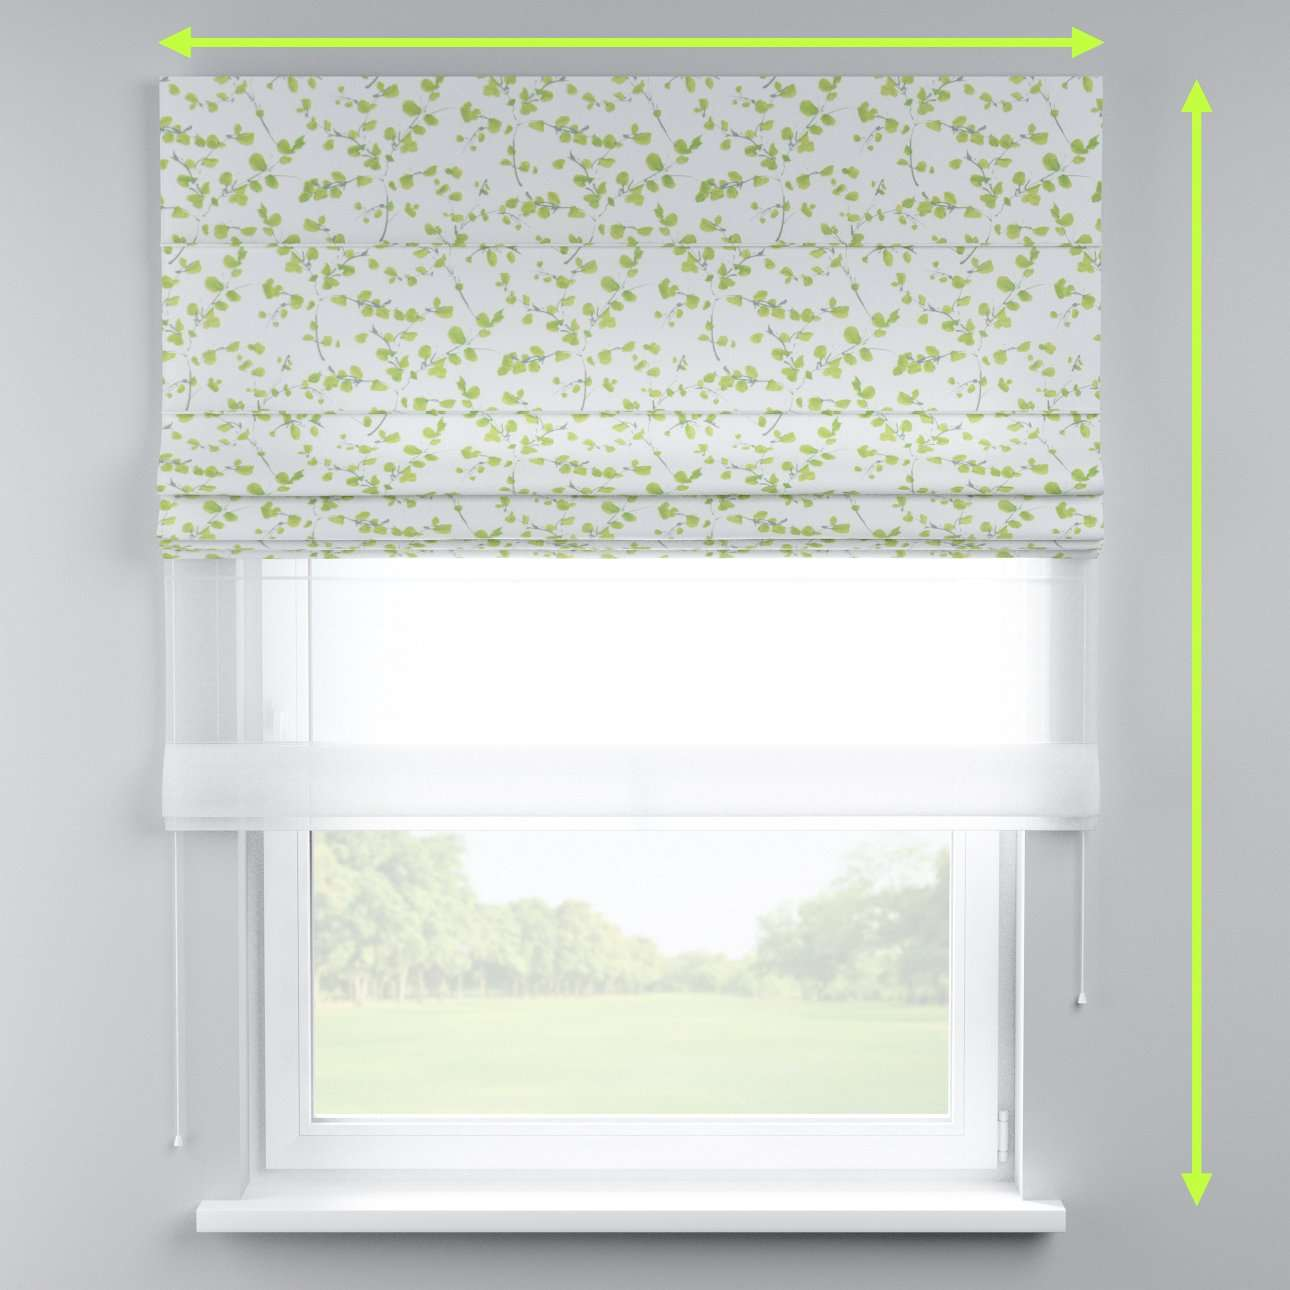 Voile and fabric roman blind (DUO II) in collection Aquarelle, fabric: 140-76